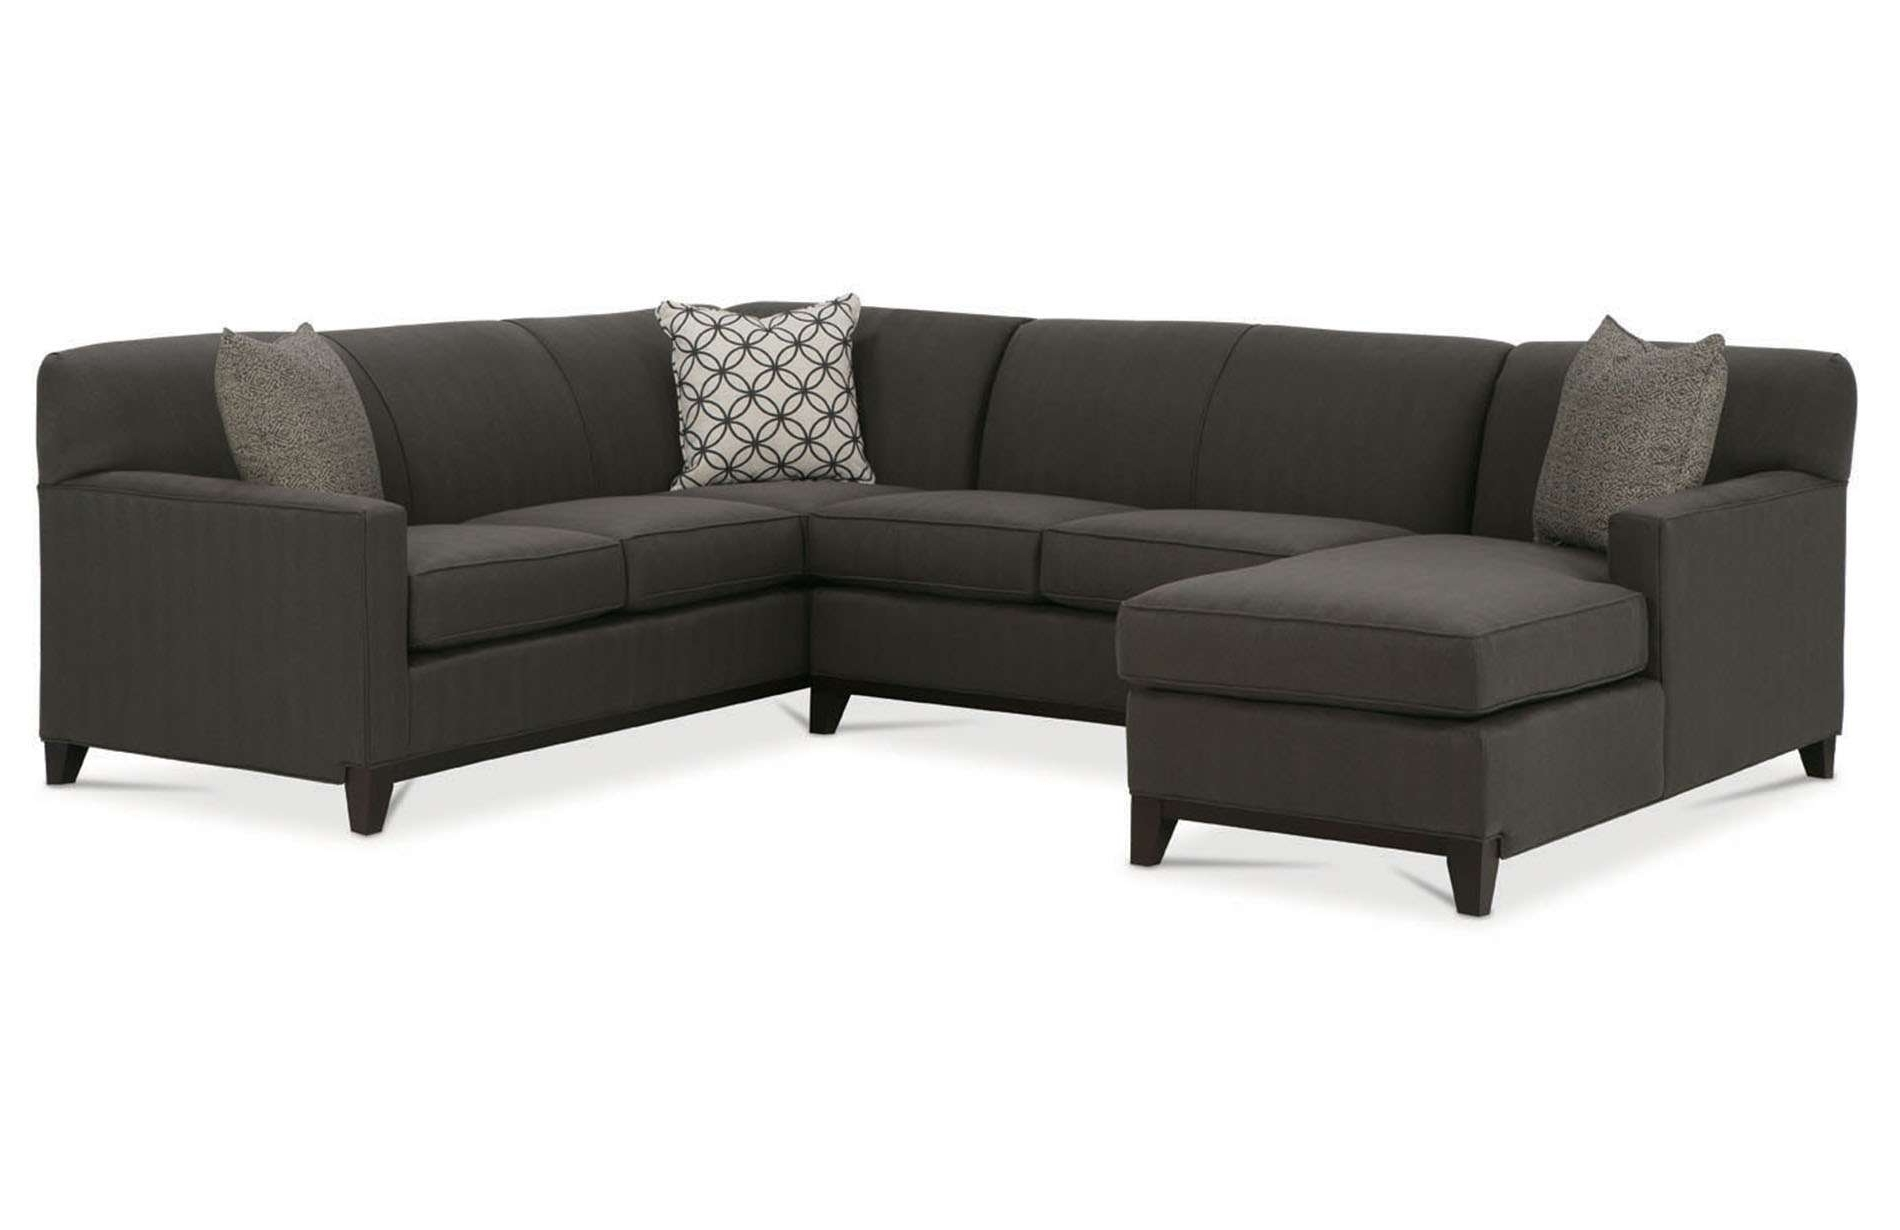 Preferred Furniture : Sectional Sofa Recliner Sectional Couch Instructions Throughout Jamaica Sectional Sofas (View 19 of 20)